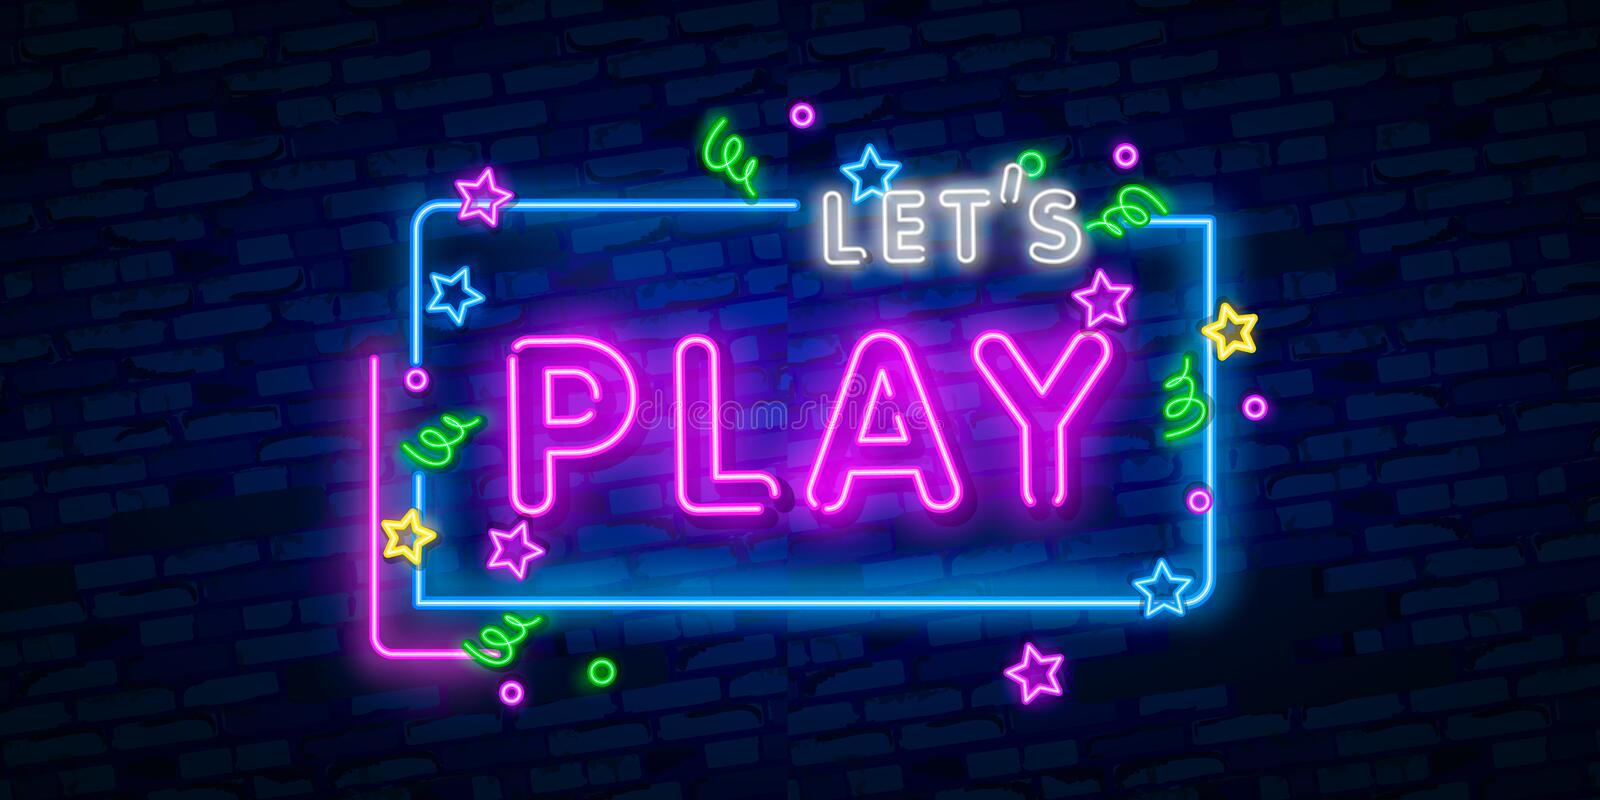 Let`s Play neon sign, bright signboard, light banner. Game logo, emblem and label. Neon sign creator. Neon text edit vector illustration